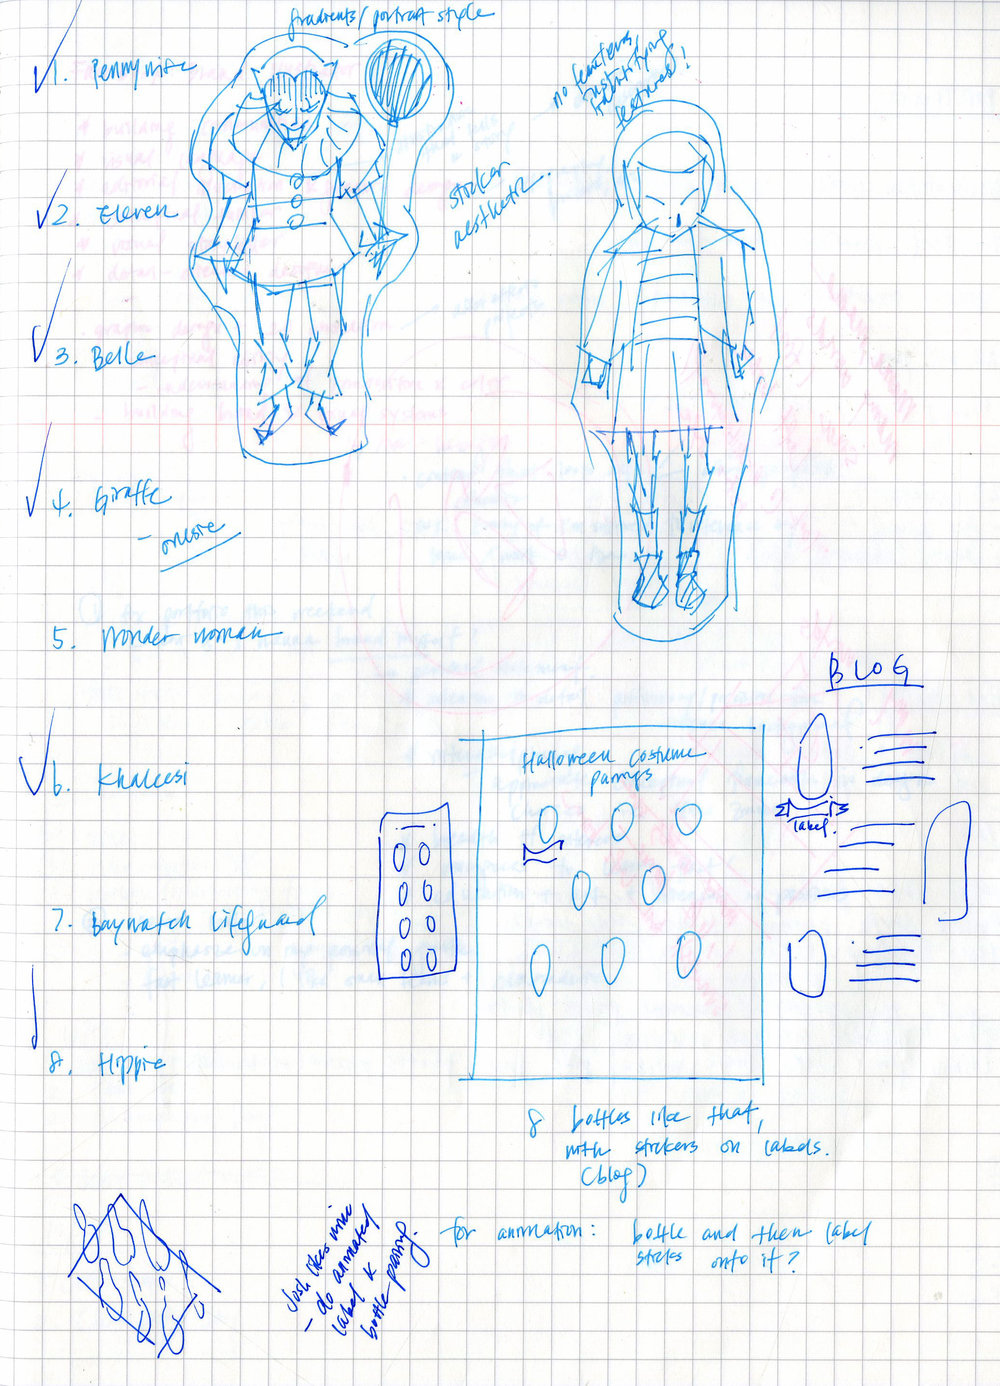 - FIGURE 1.← Initial sketches of Pennywise and Eleven. For the sake of time, the rest of the characters were directly drawn on Illustrator without preliminary drawings.